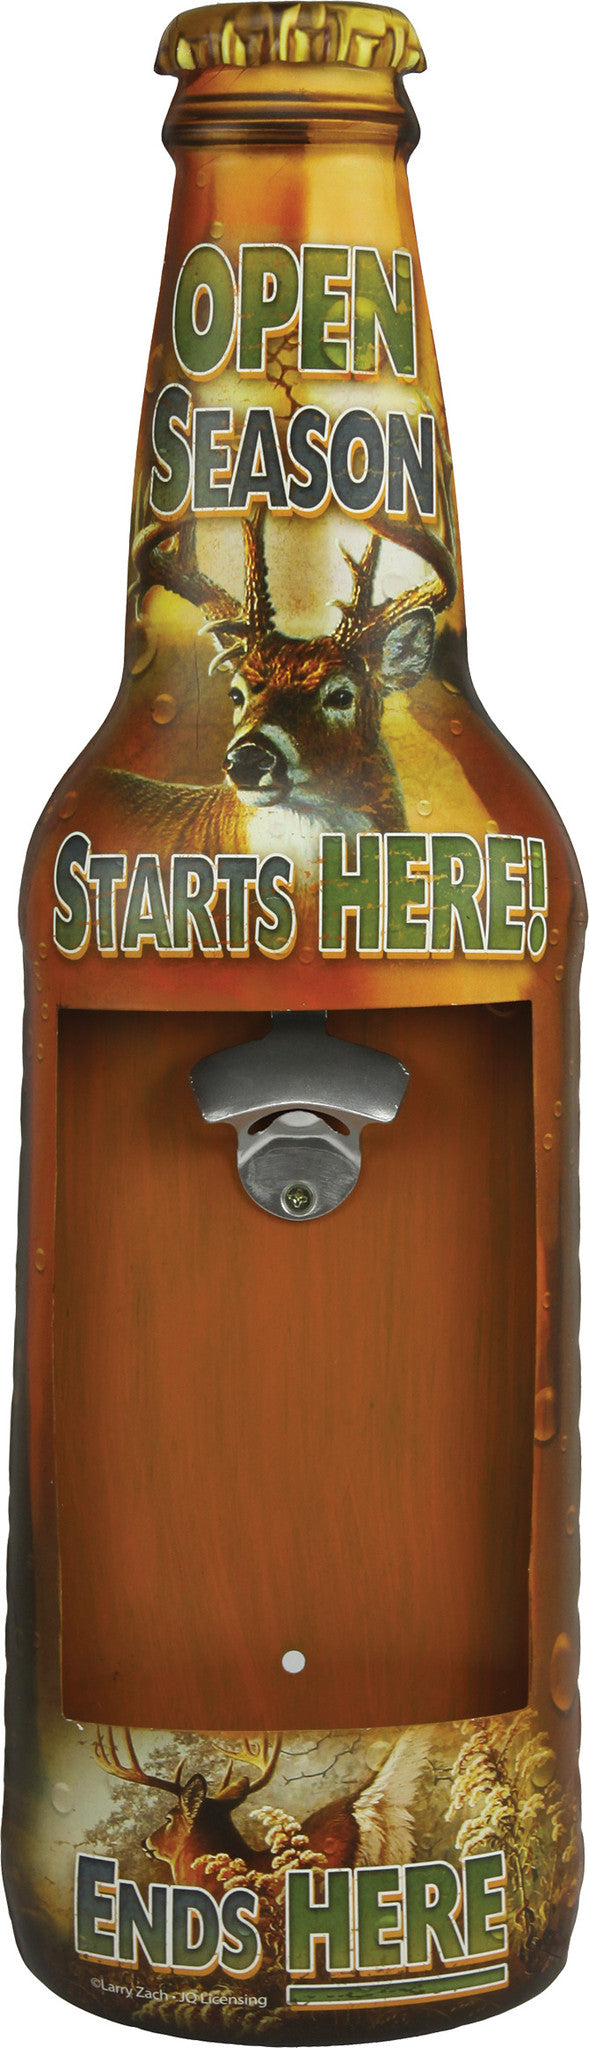 Metal Bottle Opener - Open Season - GrayGoose Products Limited